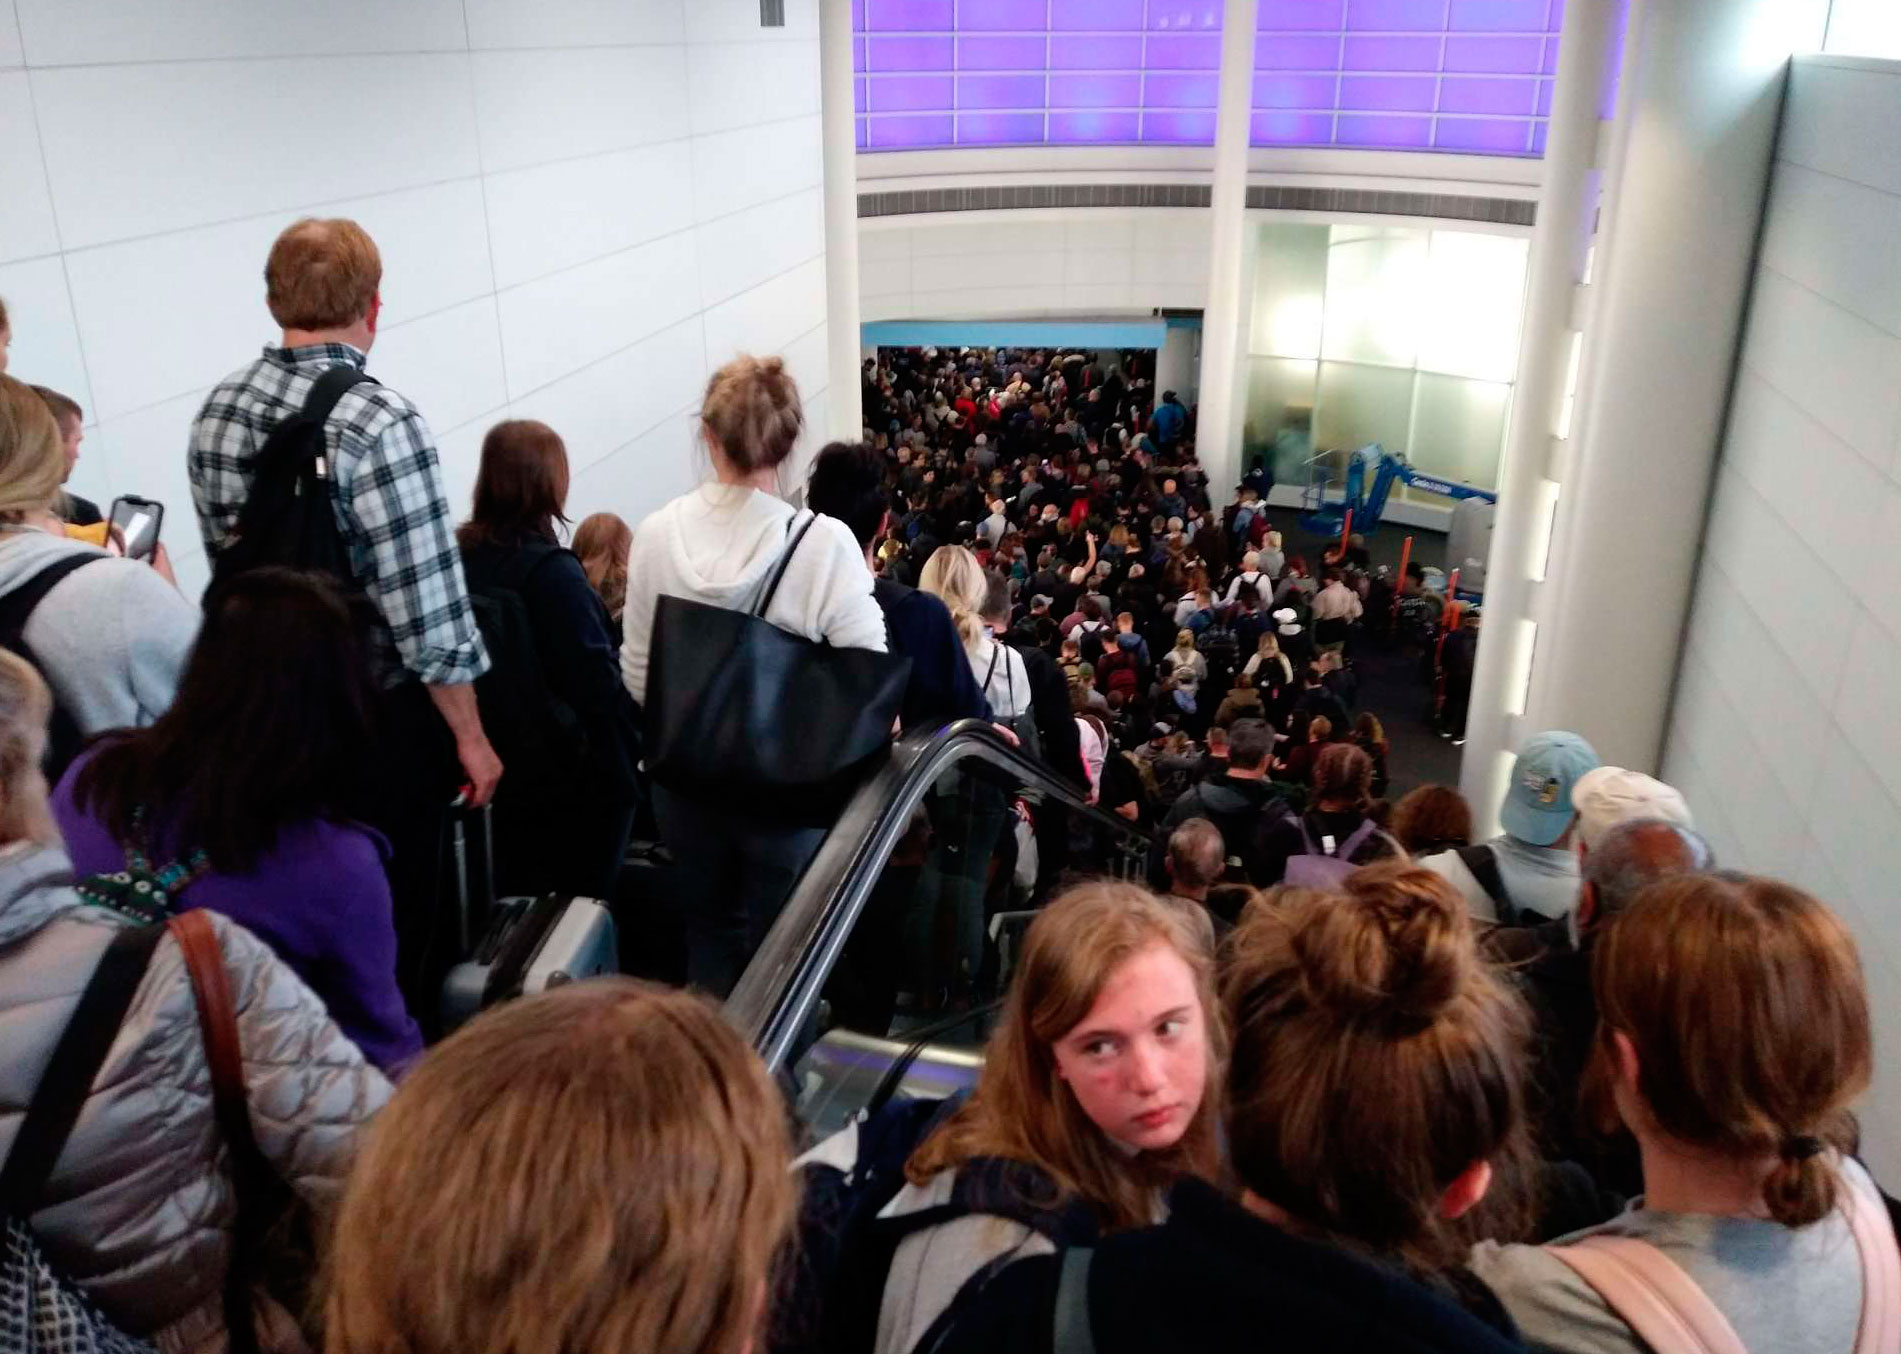 Travelers wait to go through customs at O'Hare International Airport in Chicago on March 15.